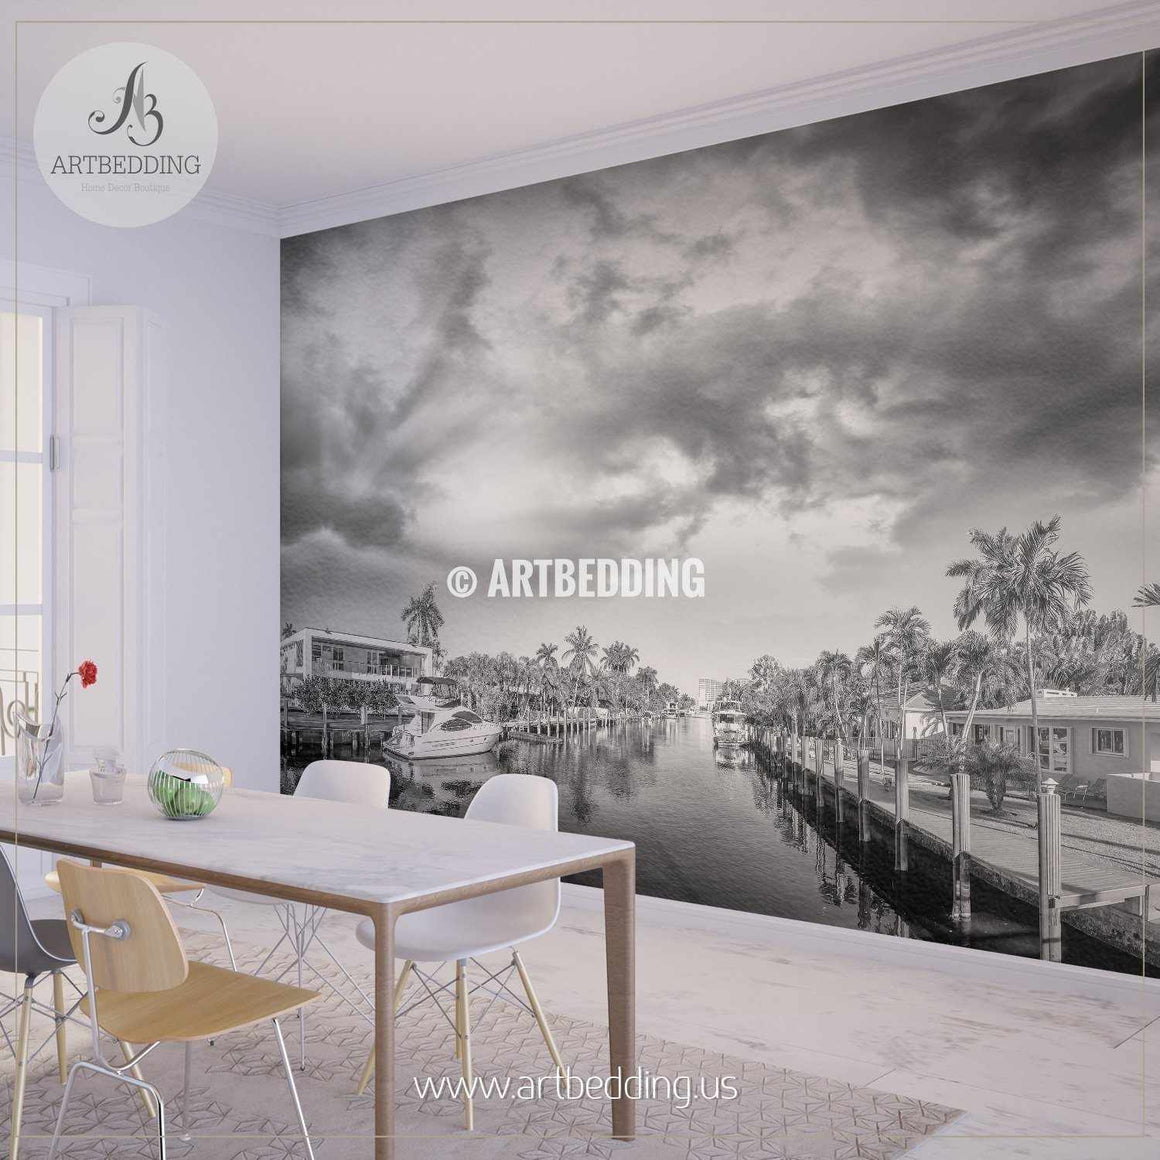 Fort Lauderdale at sunset, Florida Wall Mural, Landmarks Photo Mural, photo mural wall décor wall mural